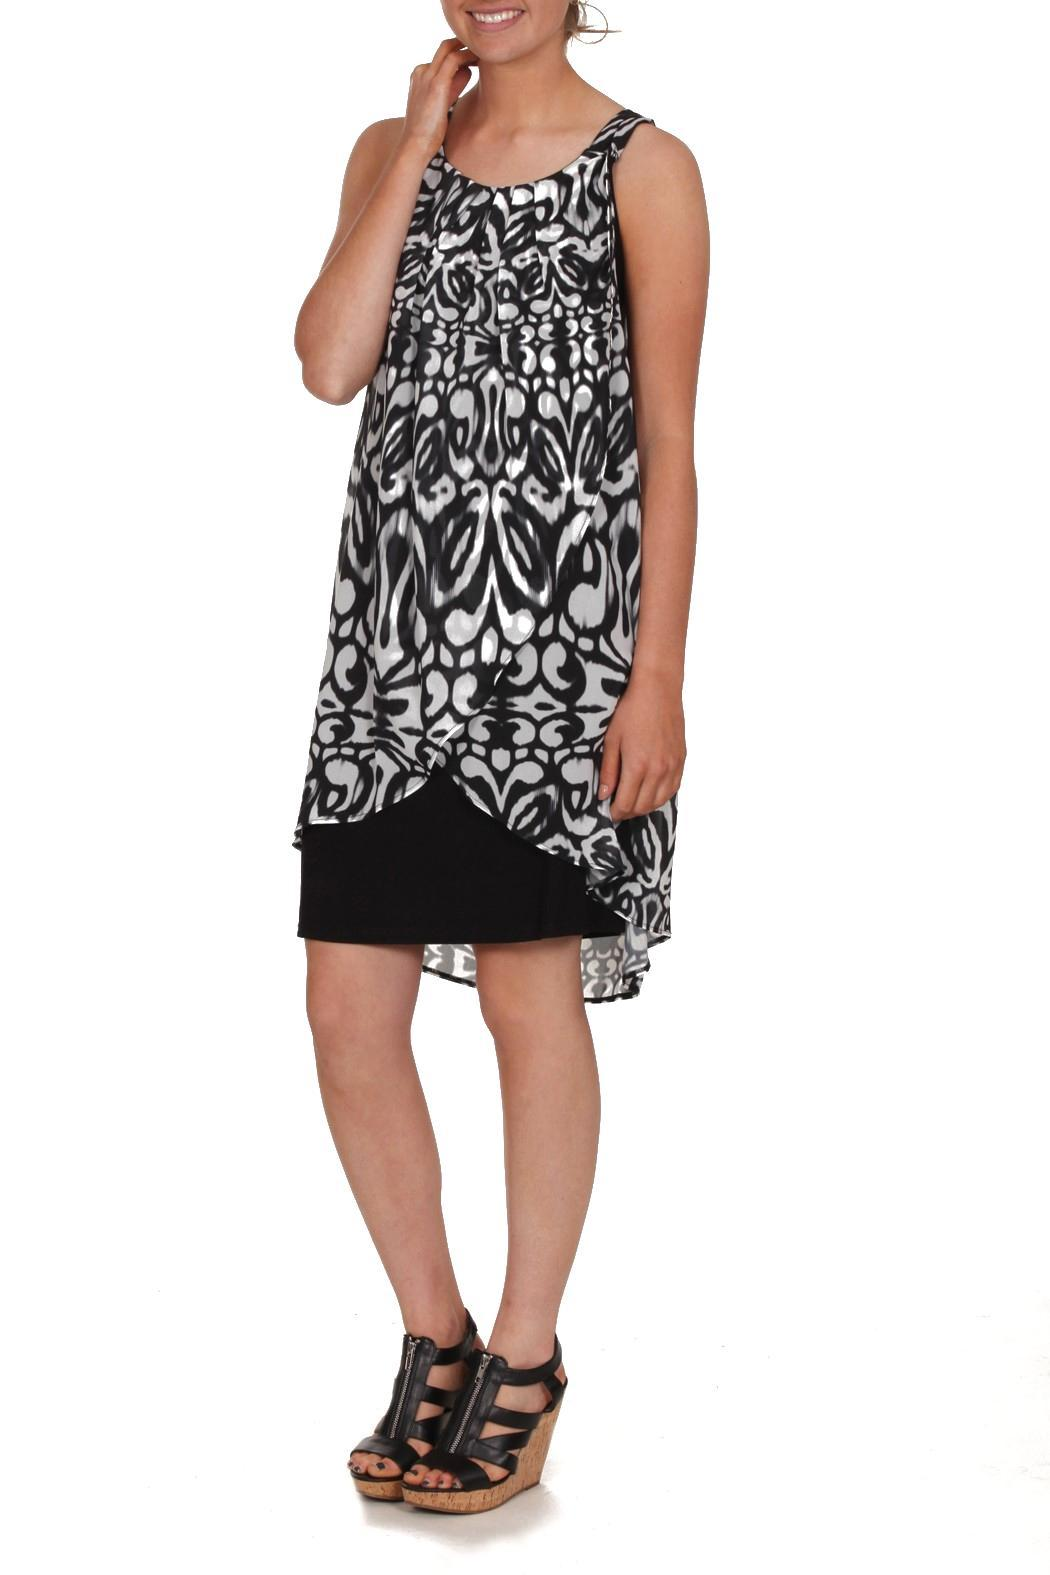 Carre Noir Patterned Mini Dress - Front Cropped Image